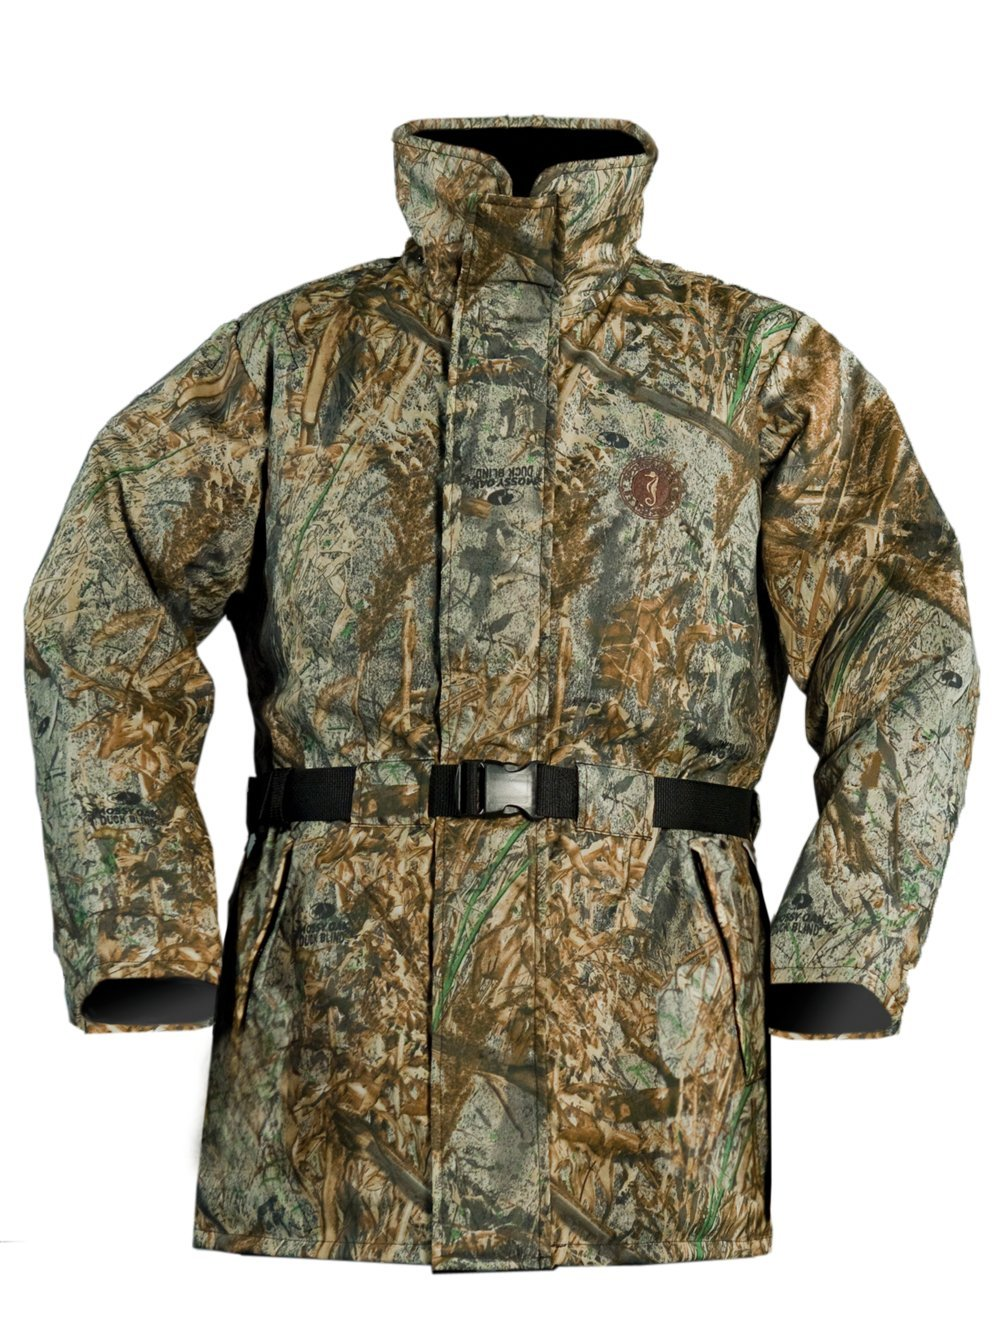 Mustang Survival Classic Flotation Coat, MO Camo, Small by Mustang Survival